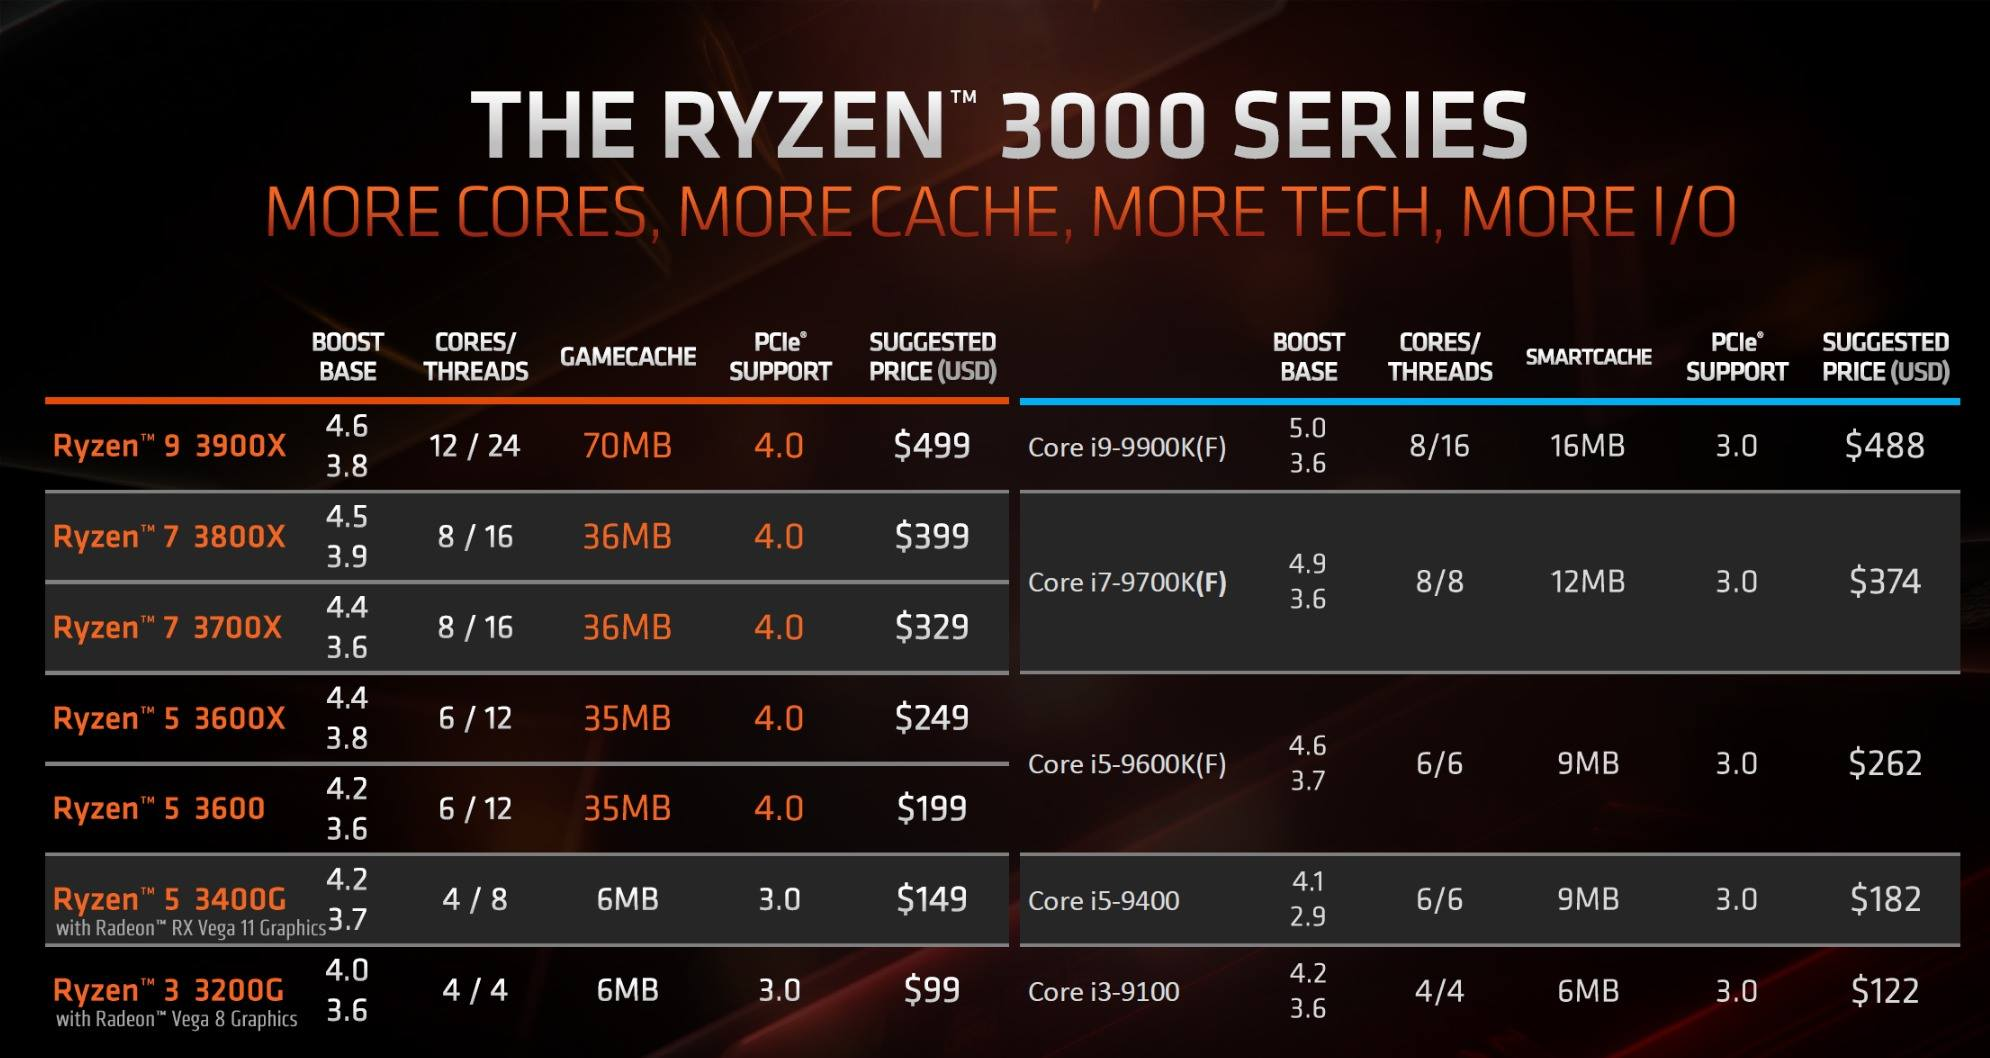 AMD RyzenTM 3000 Series